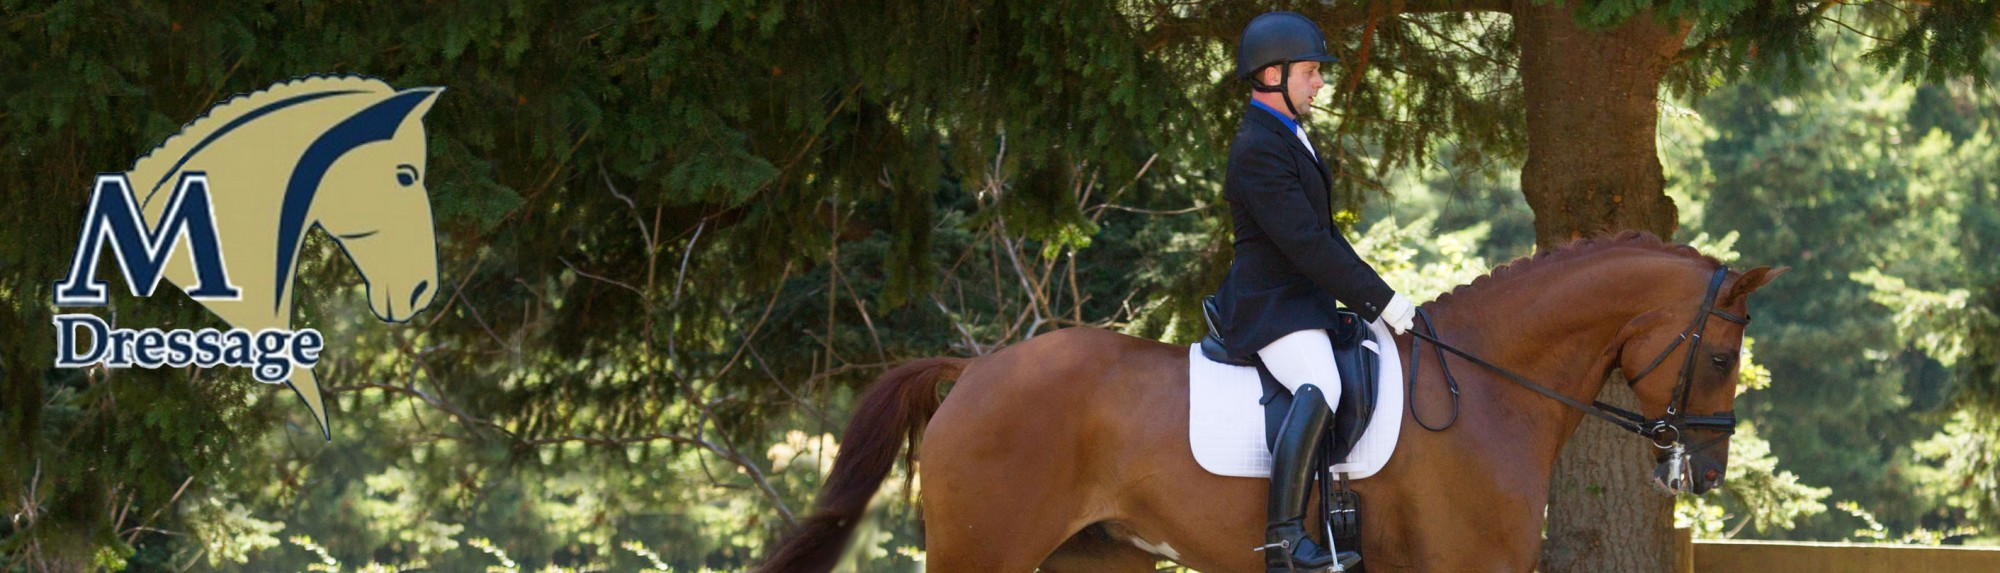 M Dressage | Seattle Area Dressage Trainers, beginner to FEI